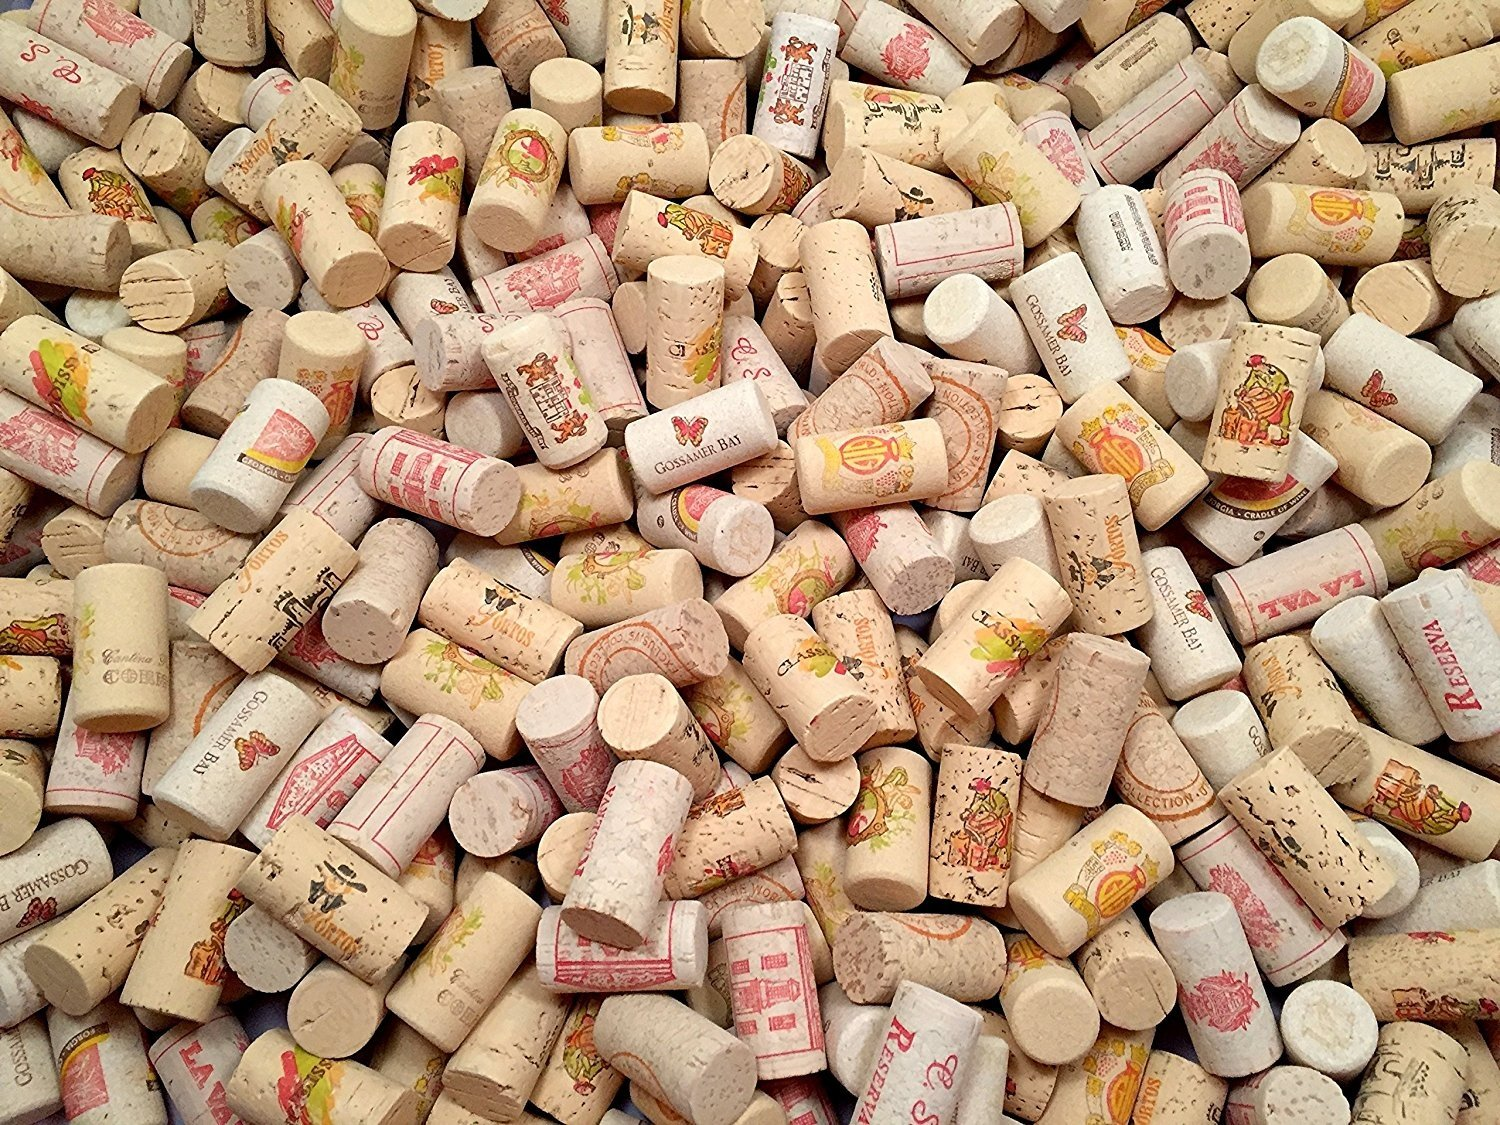 COLOR Wine Corks   Brand New, Authentic, All Natural   Printed, Winery-Marked, Craft Grade   Uncirculated, Uniform & Clean   Excellent for Crafting & Decor   Pack of 25/50/100 Premium Wine Cork (25) Omni Trading Worldwide